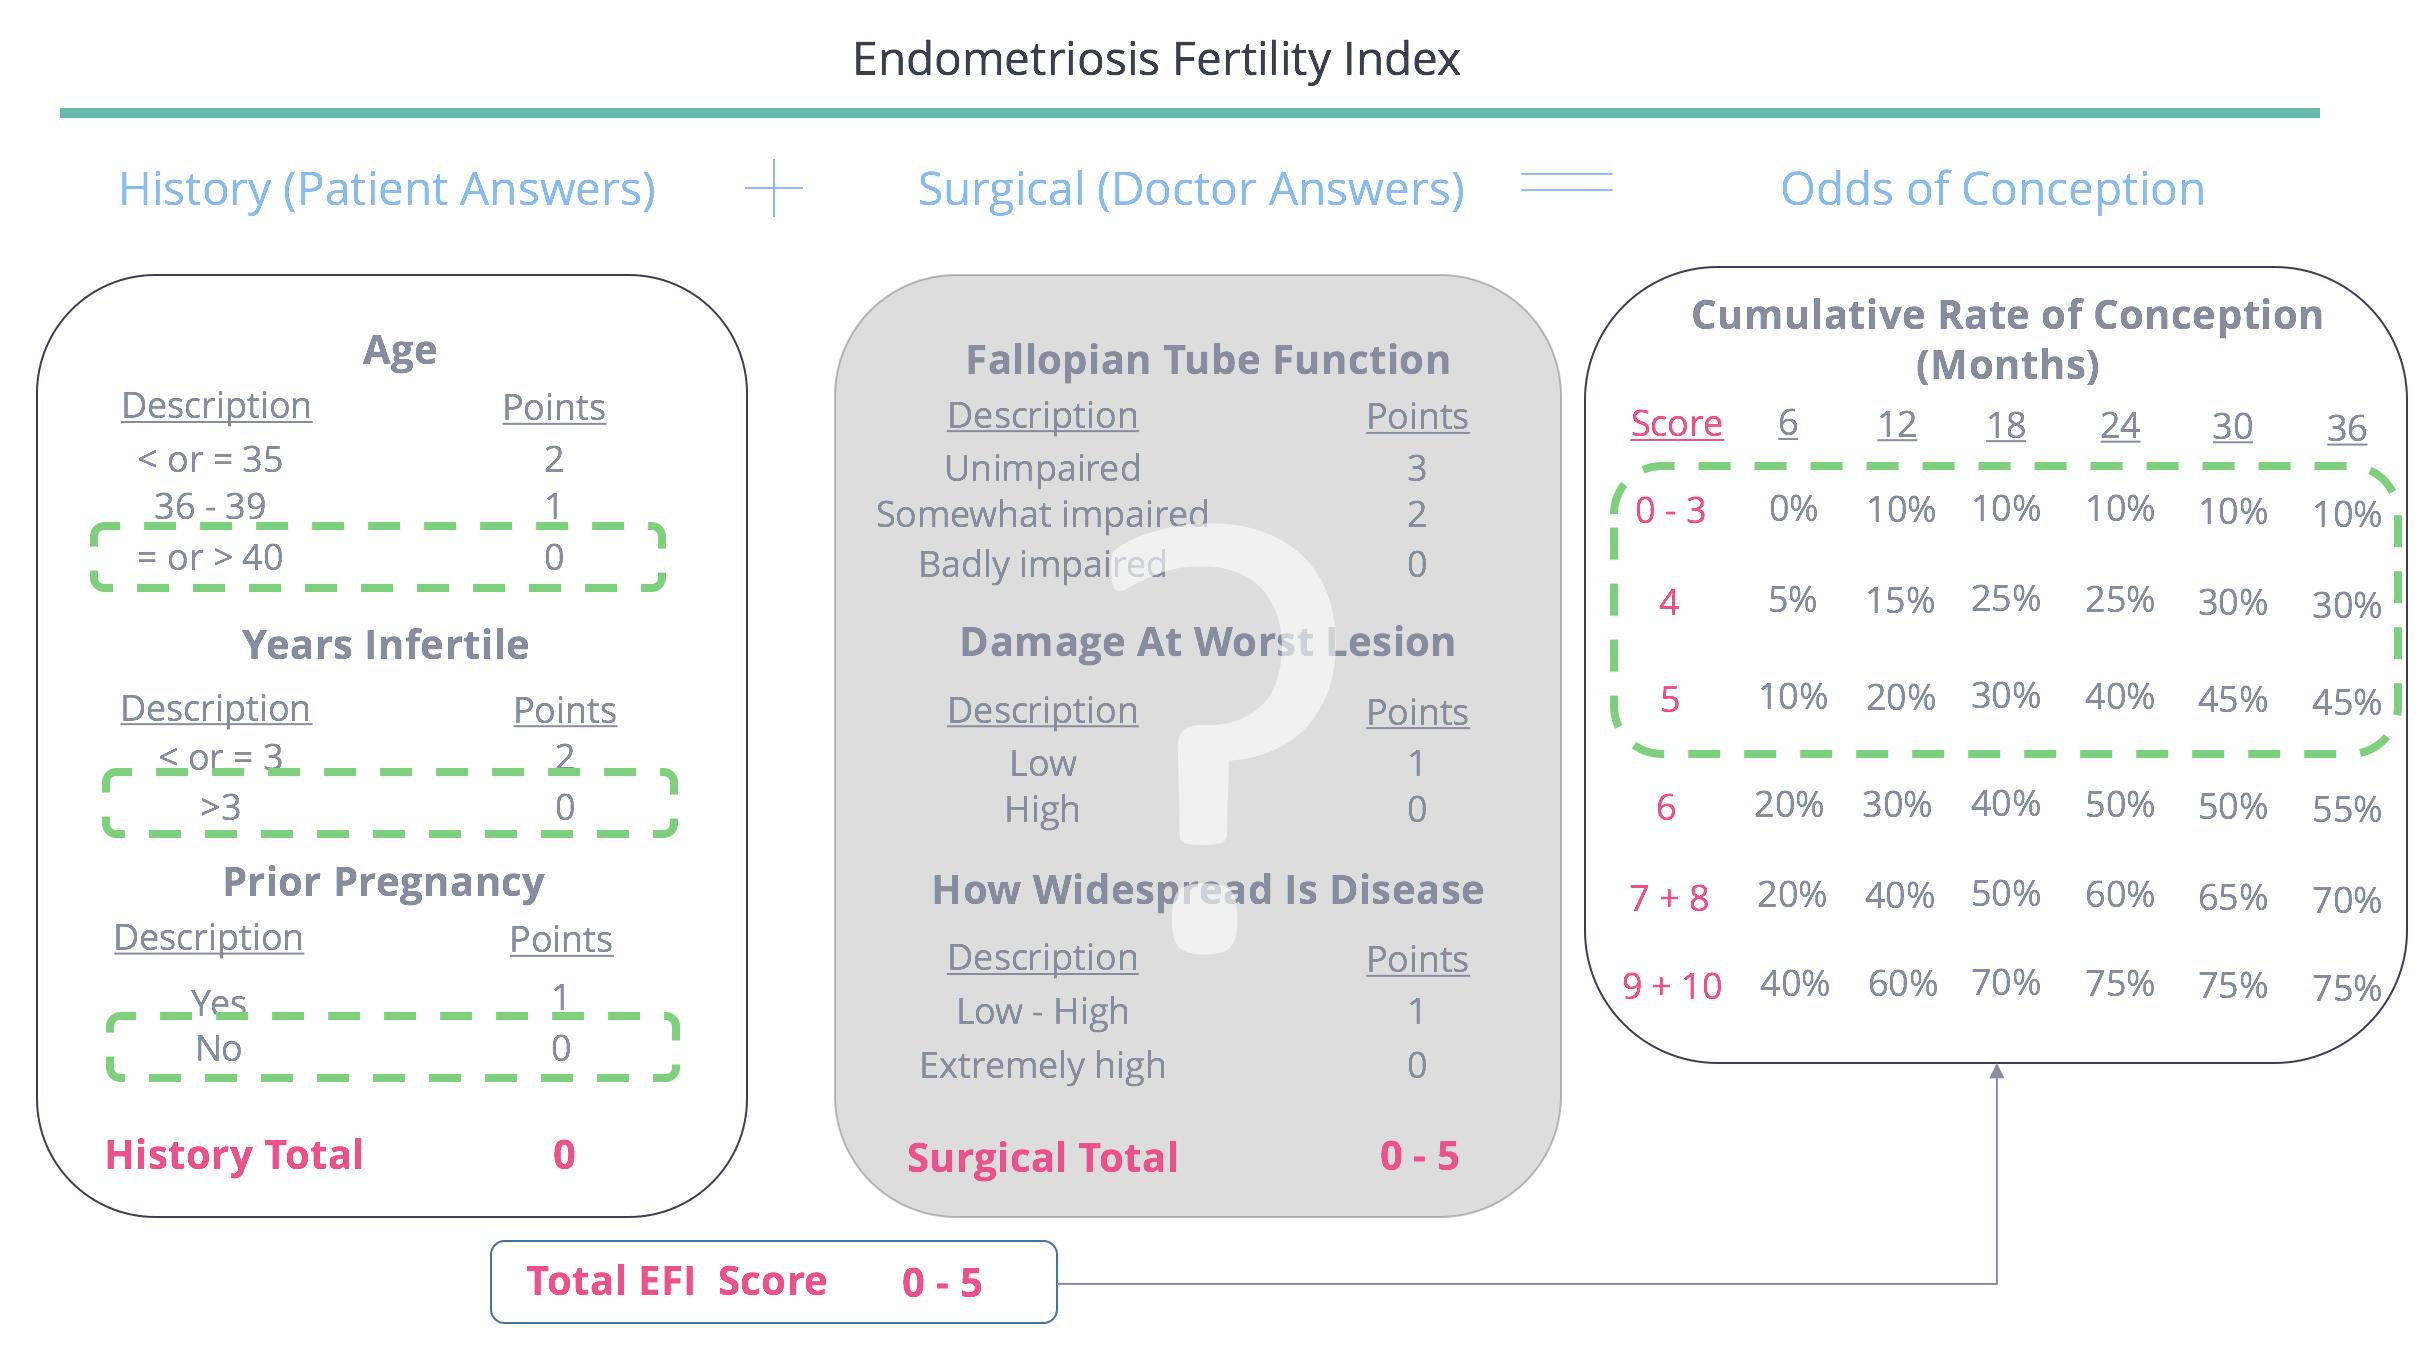 Endometriosis in 40 year old woman with 4 years infertility - endometriosis fertility index